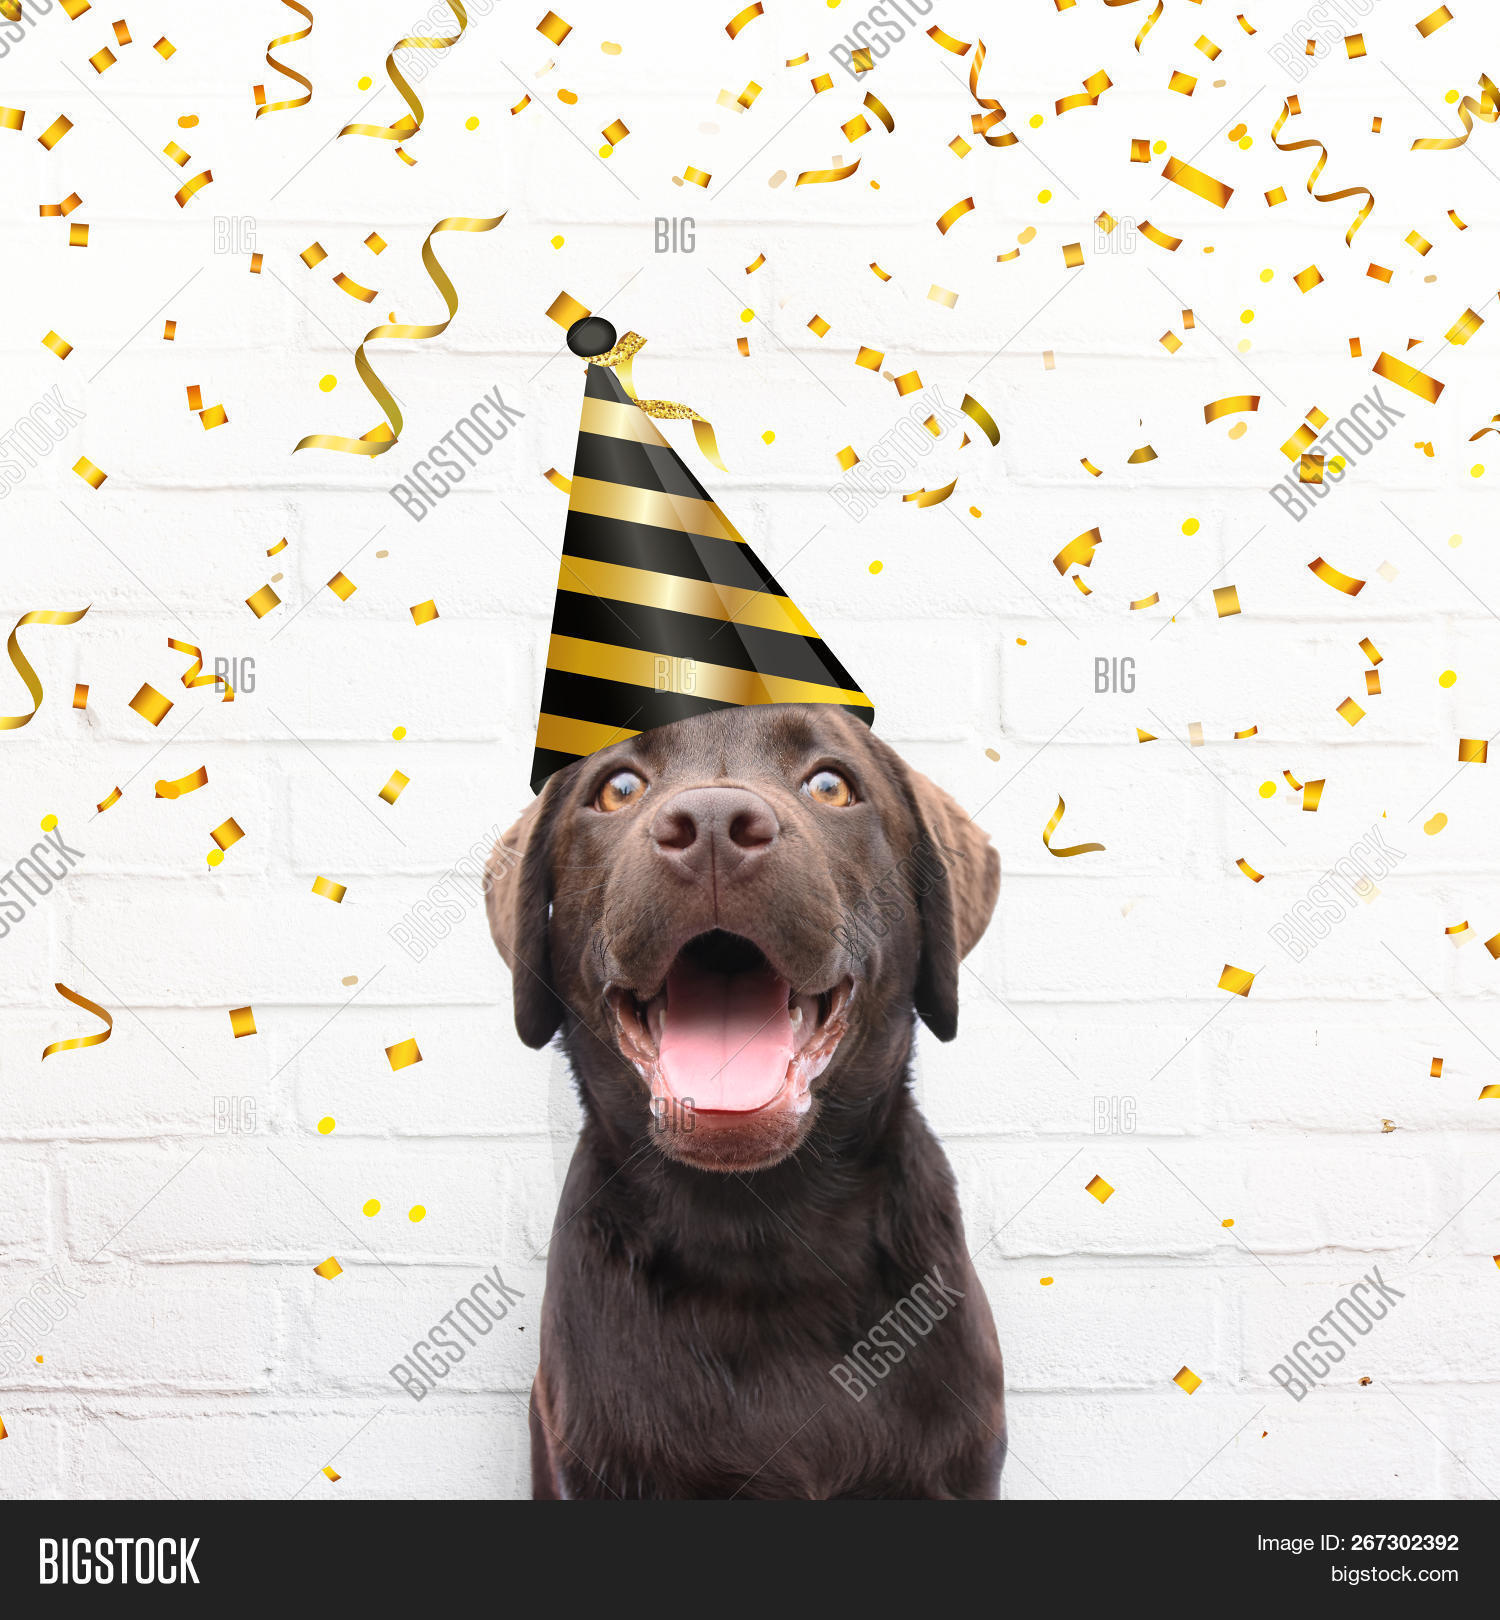 animal,background,birthday,brick,brown,cap,card,celebration,close,concept,confetti,congratulations,crazy,cute,day,dog,enthusiastic,eyes,face,front,funny,garlands,gold,happiness,happy,hat,head,holiday,humor,joke,labrador,lover,mouth,party,pet,portrait,puppy,shine,smile,smiling,square,studio,teeth,up,view,wall,white,world